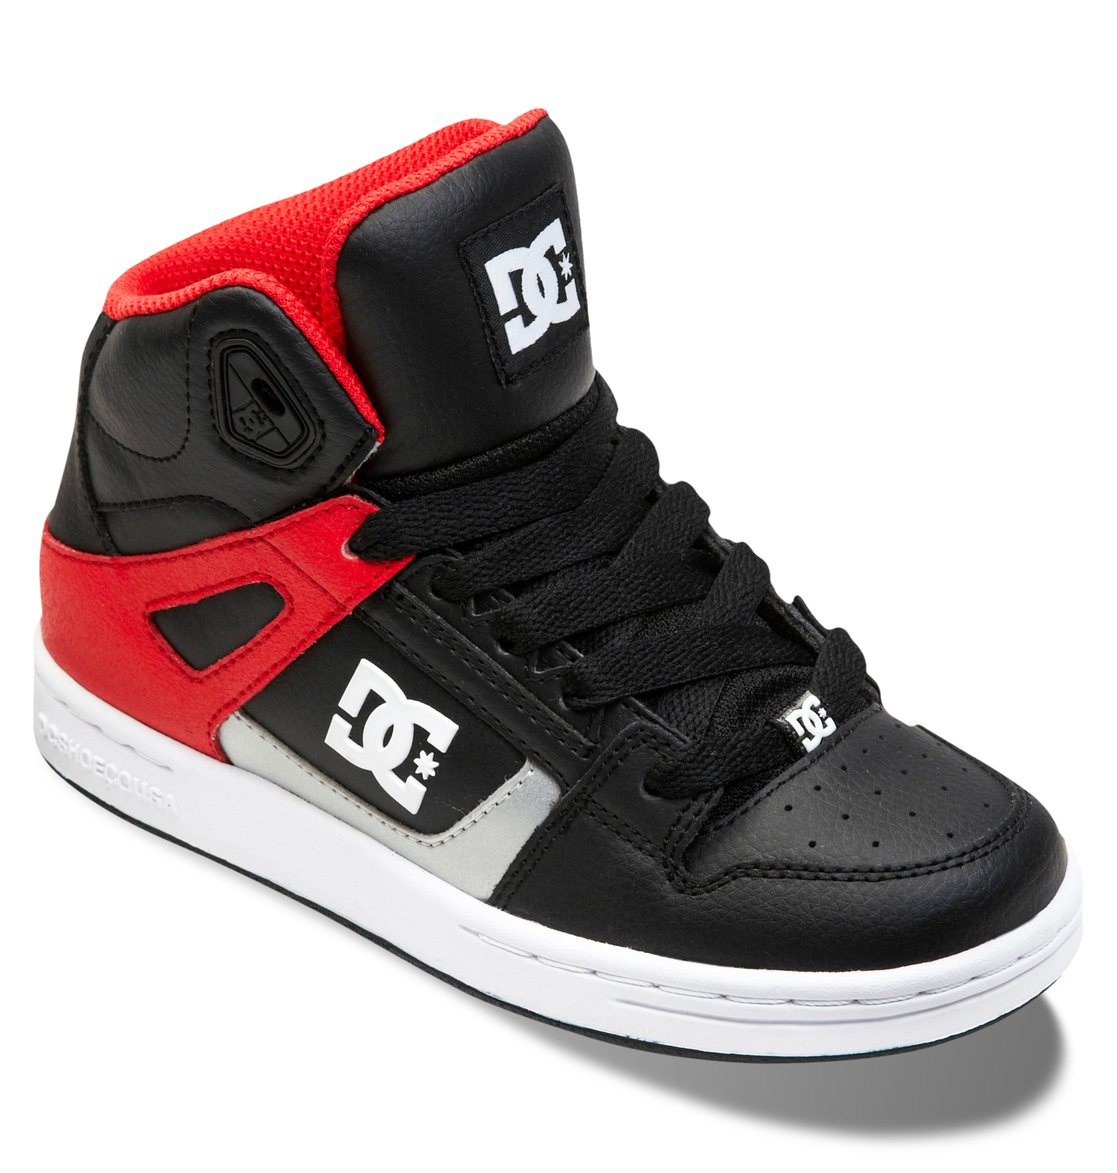 boy s 8 16 rebound high top shoes 302676b dc shoes